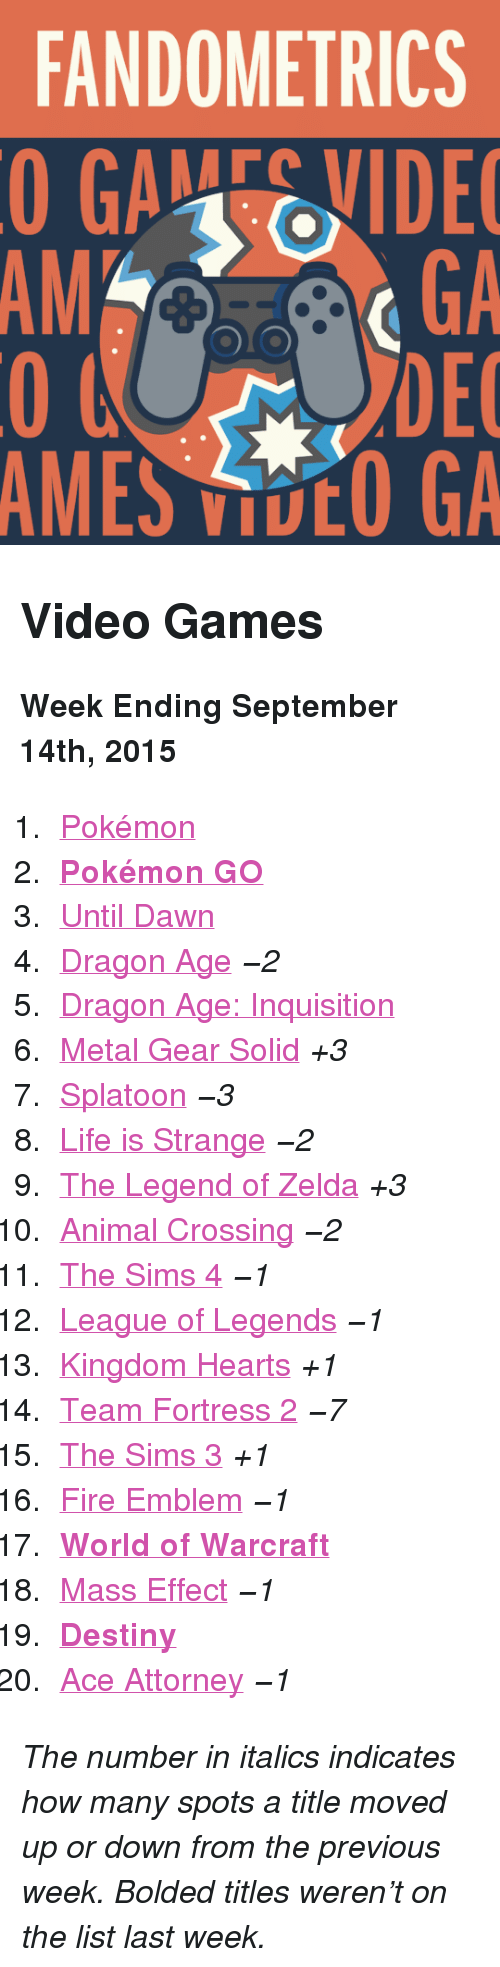 """Search: FANDOMETRICS  GAEVIDE  GA  DEC  AMES VOO GA  AM <h2>Video Games</h2><p><b>Week Ending September 14th, 2015</b></p><ol><li><a href=""""http://www.tumblr.com/search/pokemon"""">Pokémon</a></li>  <li><a href=""""http://www.tumblr.com/search/pokemon%20go""""><b>Pokémon GO</b></a></li>  <li><a href=""""http://www.tumblr.com/search/until%20dawn"""">Until Dawn</a></li>  <li><a href=""""http://www.tumblr.com/search/dragon%20age"""">Dragon Age</a><i>−2</i></li>  <li><a href=""""http://www.tumblr.com/search/dragon%20age%20inquisition"""">Dragon Age: Inquisition</a></li>  <li><a href=""""http://www.tumblr.com/search/metal%20gear%20solid"""">Metal Gear Solid</a><i>+3</i></li>  <li><a href=""""http://www.tumblr.com/search/splatoon"""">Splatoon</a><i>−3</i></li>  <li><a href=""""http://www.tumblr.com/search/life%20is%20strange"""">Life is Strange</a><i>−2</i></li>  <li><a href=""""http://www.tumblr.com/search/legend%20of%20zelda"""">The Legend of Zelda</a><i>+3</i></li>  <li><a href=""""http://www.tumblr.com/search/acnl"""">Animal Crossing</a><i>−2</i></li>  <li><a href=""""http://www.tumblr.com/search/sims%204"""">The Sims 4</a><i>−1</i></li>  <li><a href=""""http://www.tumblr.com/search/league%20of%20legends"""">League of Legends</a><i>−1</i></li>  <li><a href=""""http://www.tumblr.com/search/kingdom%20hearts"""">Kingdom Hearts</a><i>+1</i></li>  <li><a href=""""http://www.tumblr.com/search/tf2"""">Team Fortress 2</a><i>−7</i></li>  <li><a href=""""http://www.tumblr.com/search/sims%203"""">The Sims 3</a><i>+1</i></li>  <li><a href=""""http://www.tumblr.com/search/fire%20emblem"""">Fire Emblem</a><i>−1</i></li>  <li><a href=""""http://www.tumblr.com/search/world%20of%20warcraft""""><b>World of Warcraft</b></a></li>  <li><a href=""""http://www.tumblr.com/search/mass%20effect"""">Mass Effect</a><i>−1</i></li>  <li><a href=""""http://www.tumblr.com/search/destiny""""><b>Destiny</b></a></li>  <li><a href=""""http://www.tumblr.com/search/ace%20attorney"""">Ace Attorney</a><i>−1</i></li></ol><p><i>The number in italics indicates how many spots a title moved up or down from the previous week. Bo"""